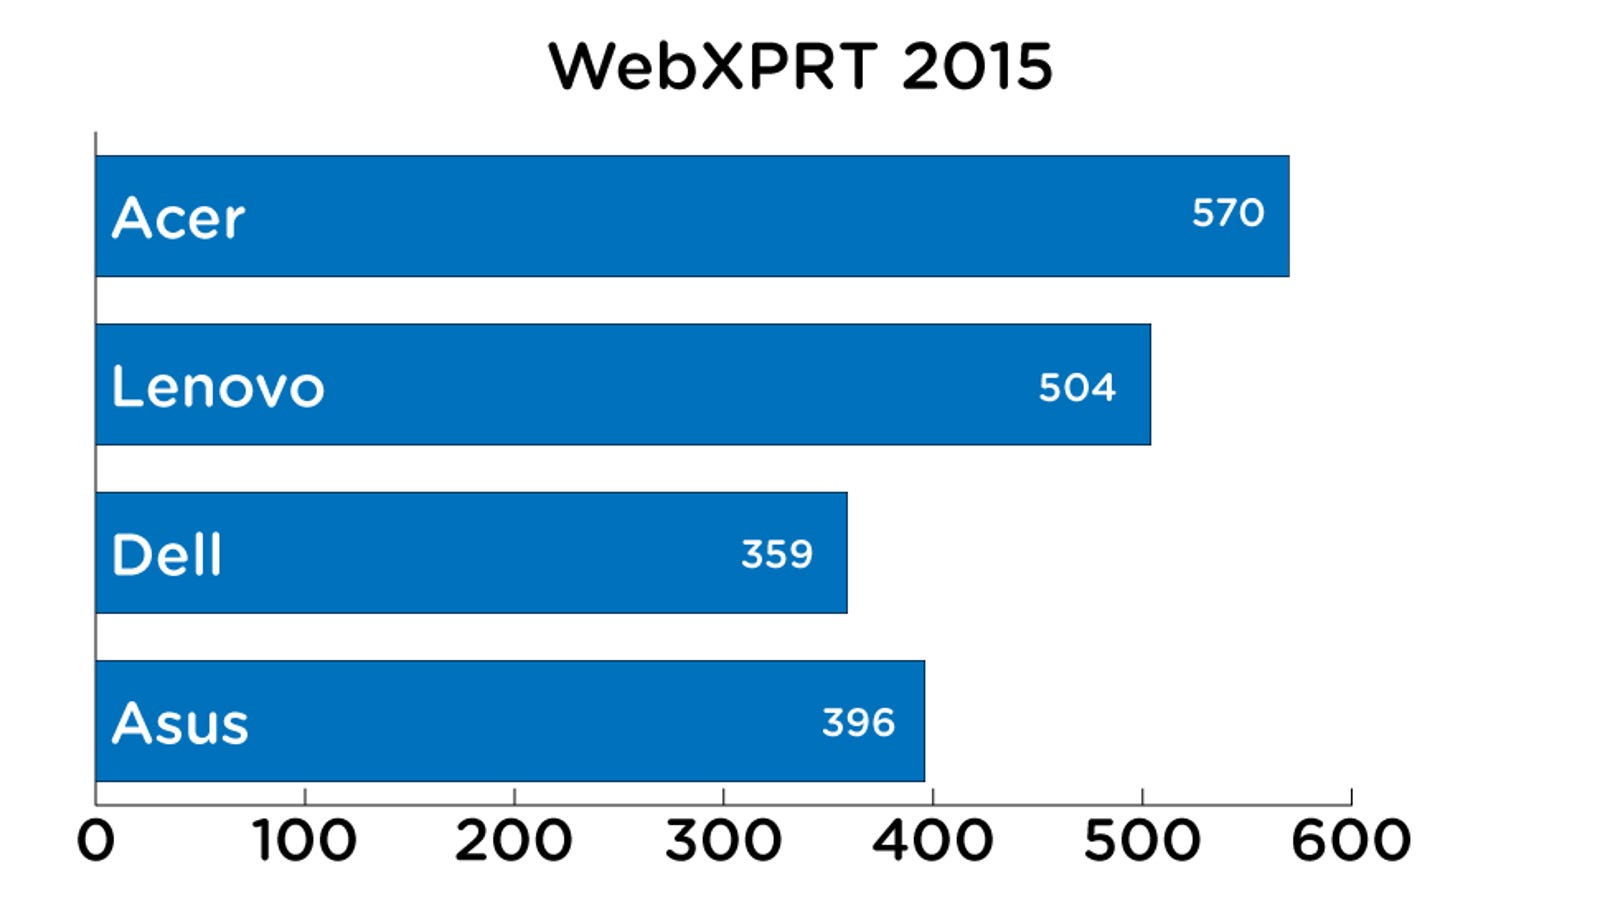 WebXPRT 2015 Score. Higher is better. Image: Alex Cranz/Gizmodo